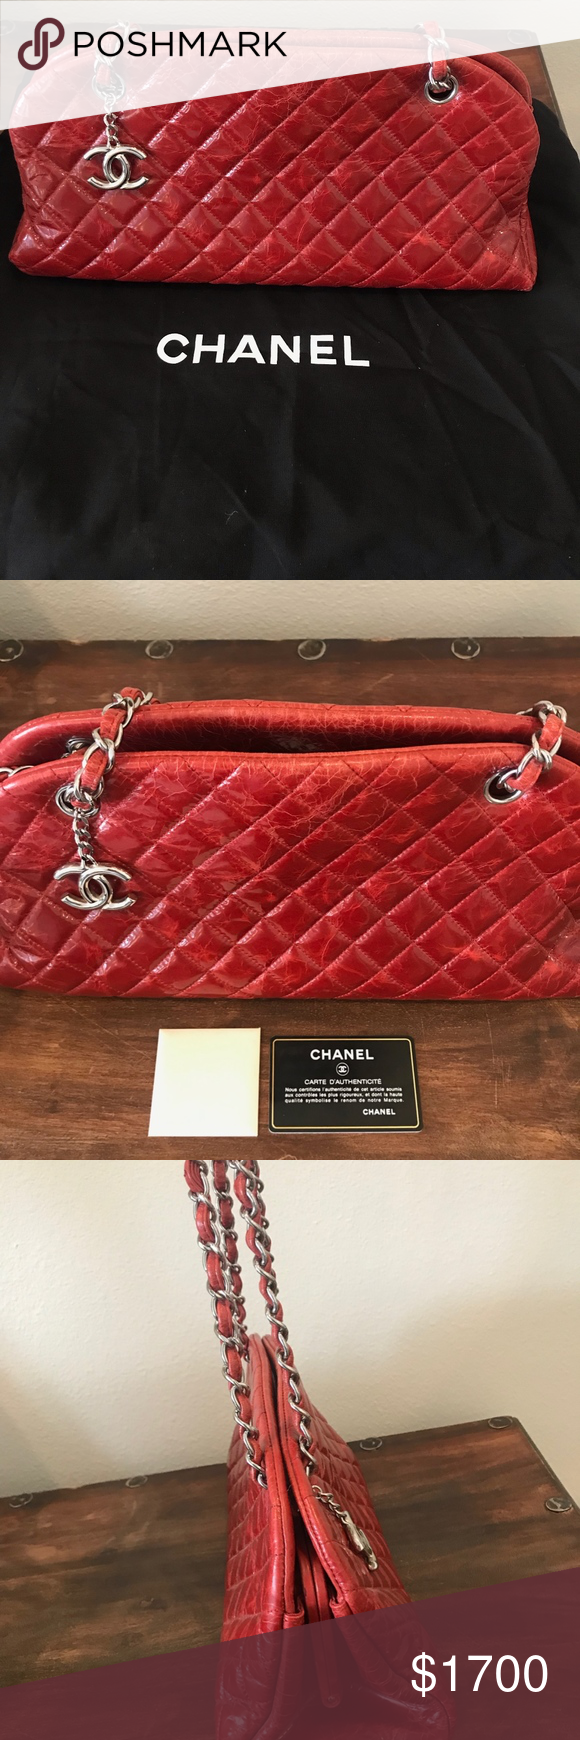 987d1037cc3846 Chanel Just Mademoiselle Medium Chanel Just Mademoiselle Medium Crimson  quilted red glazed aged calfskin in like new condition.